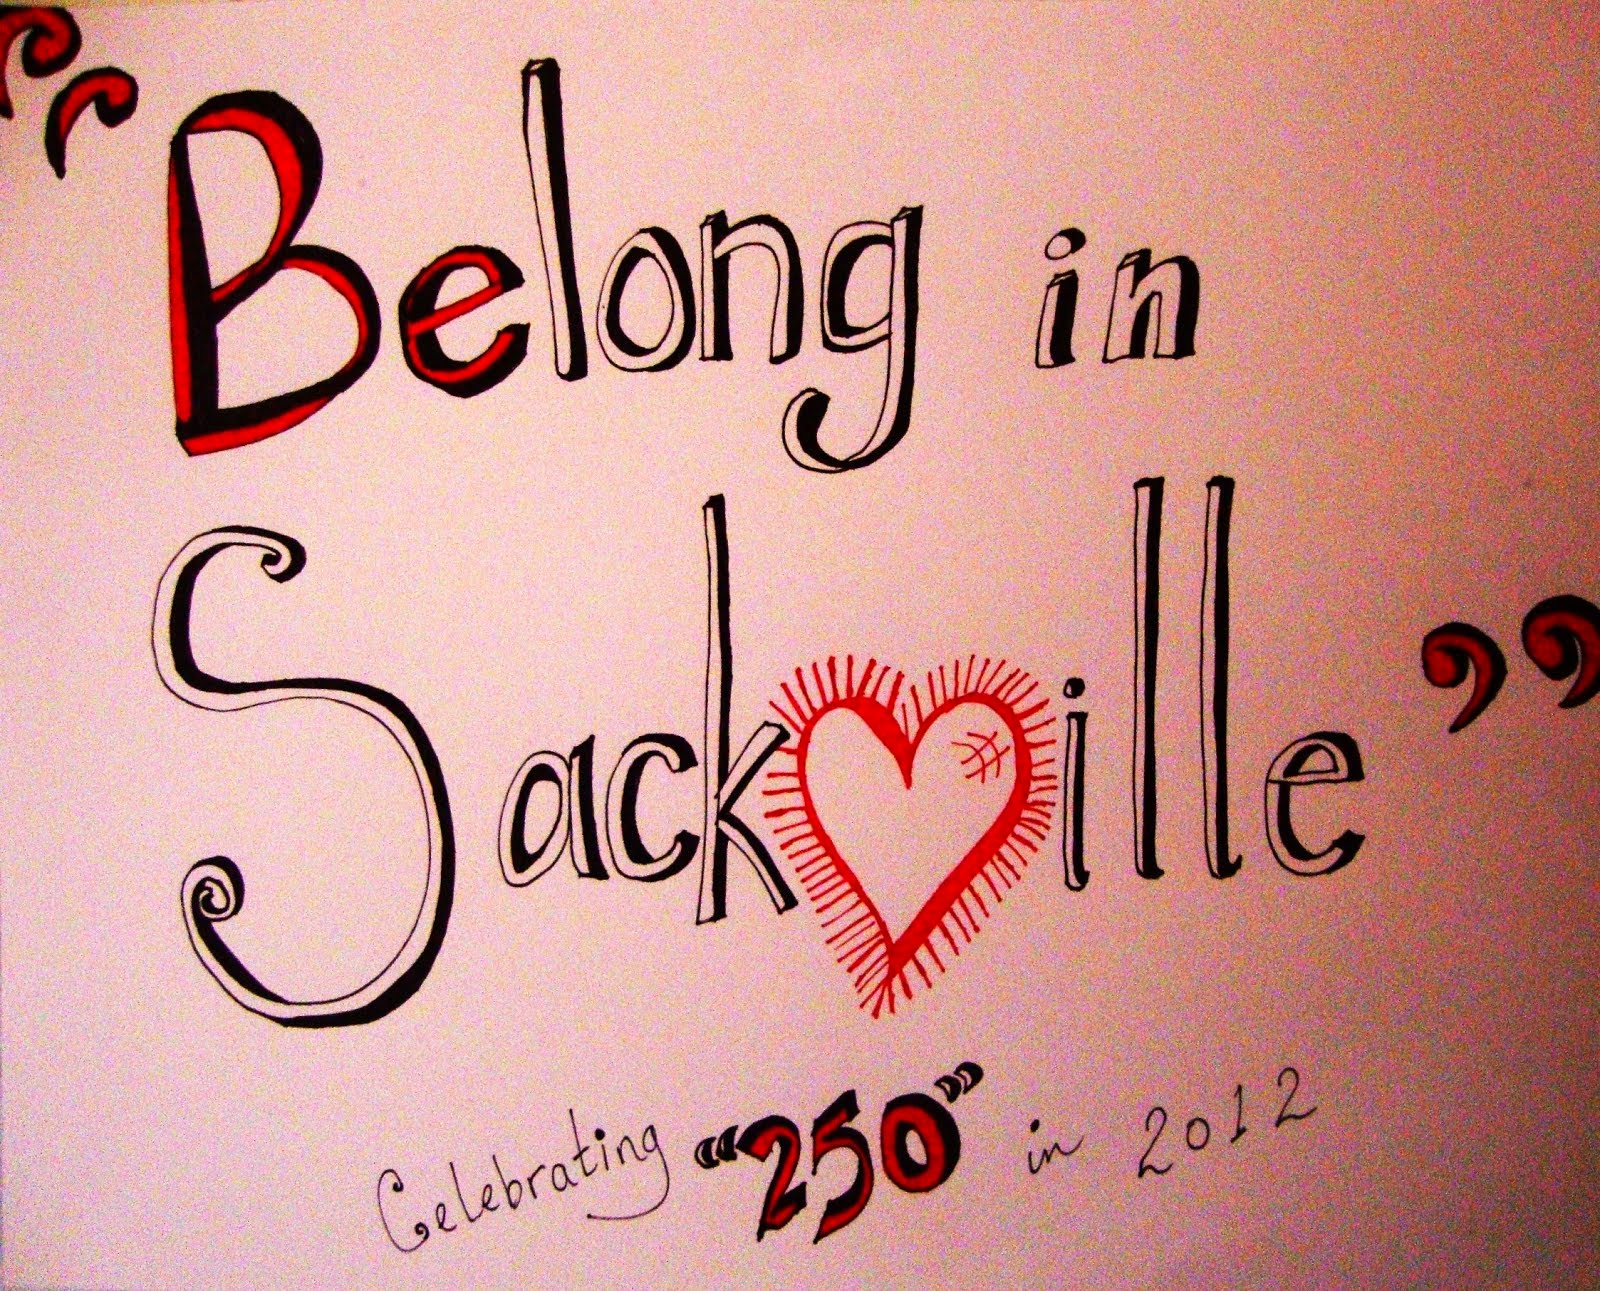 Sackville is home ...